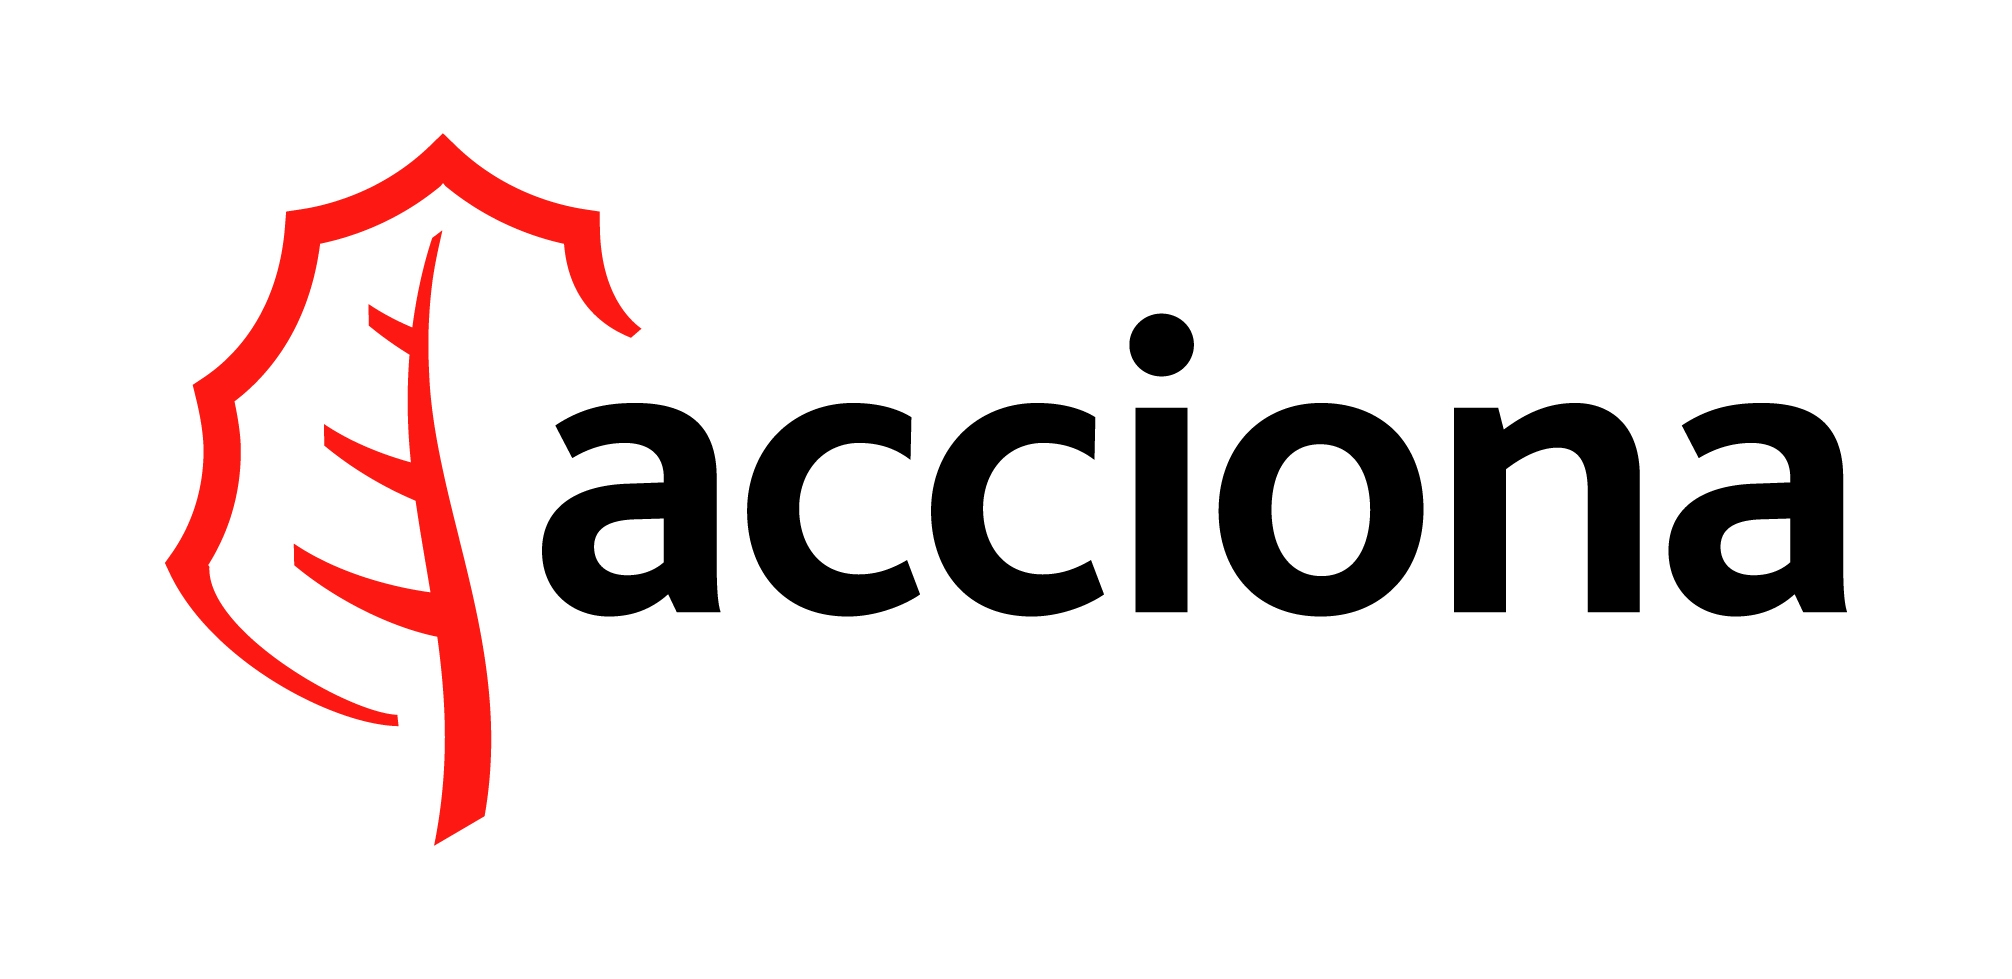 Acciona Logo Wallpaper